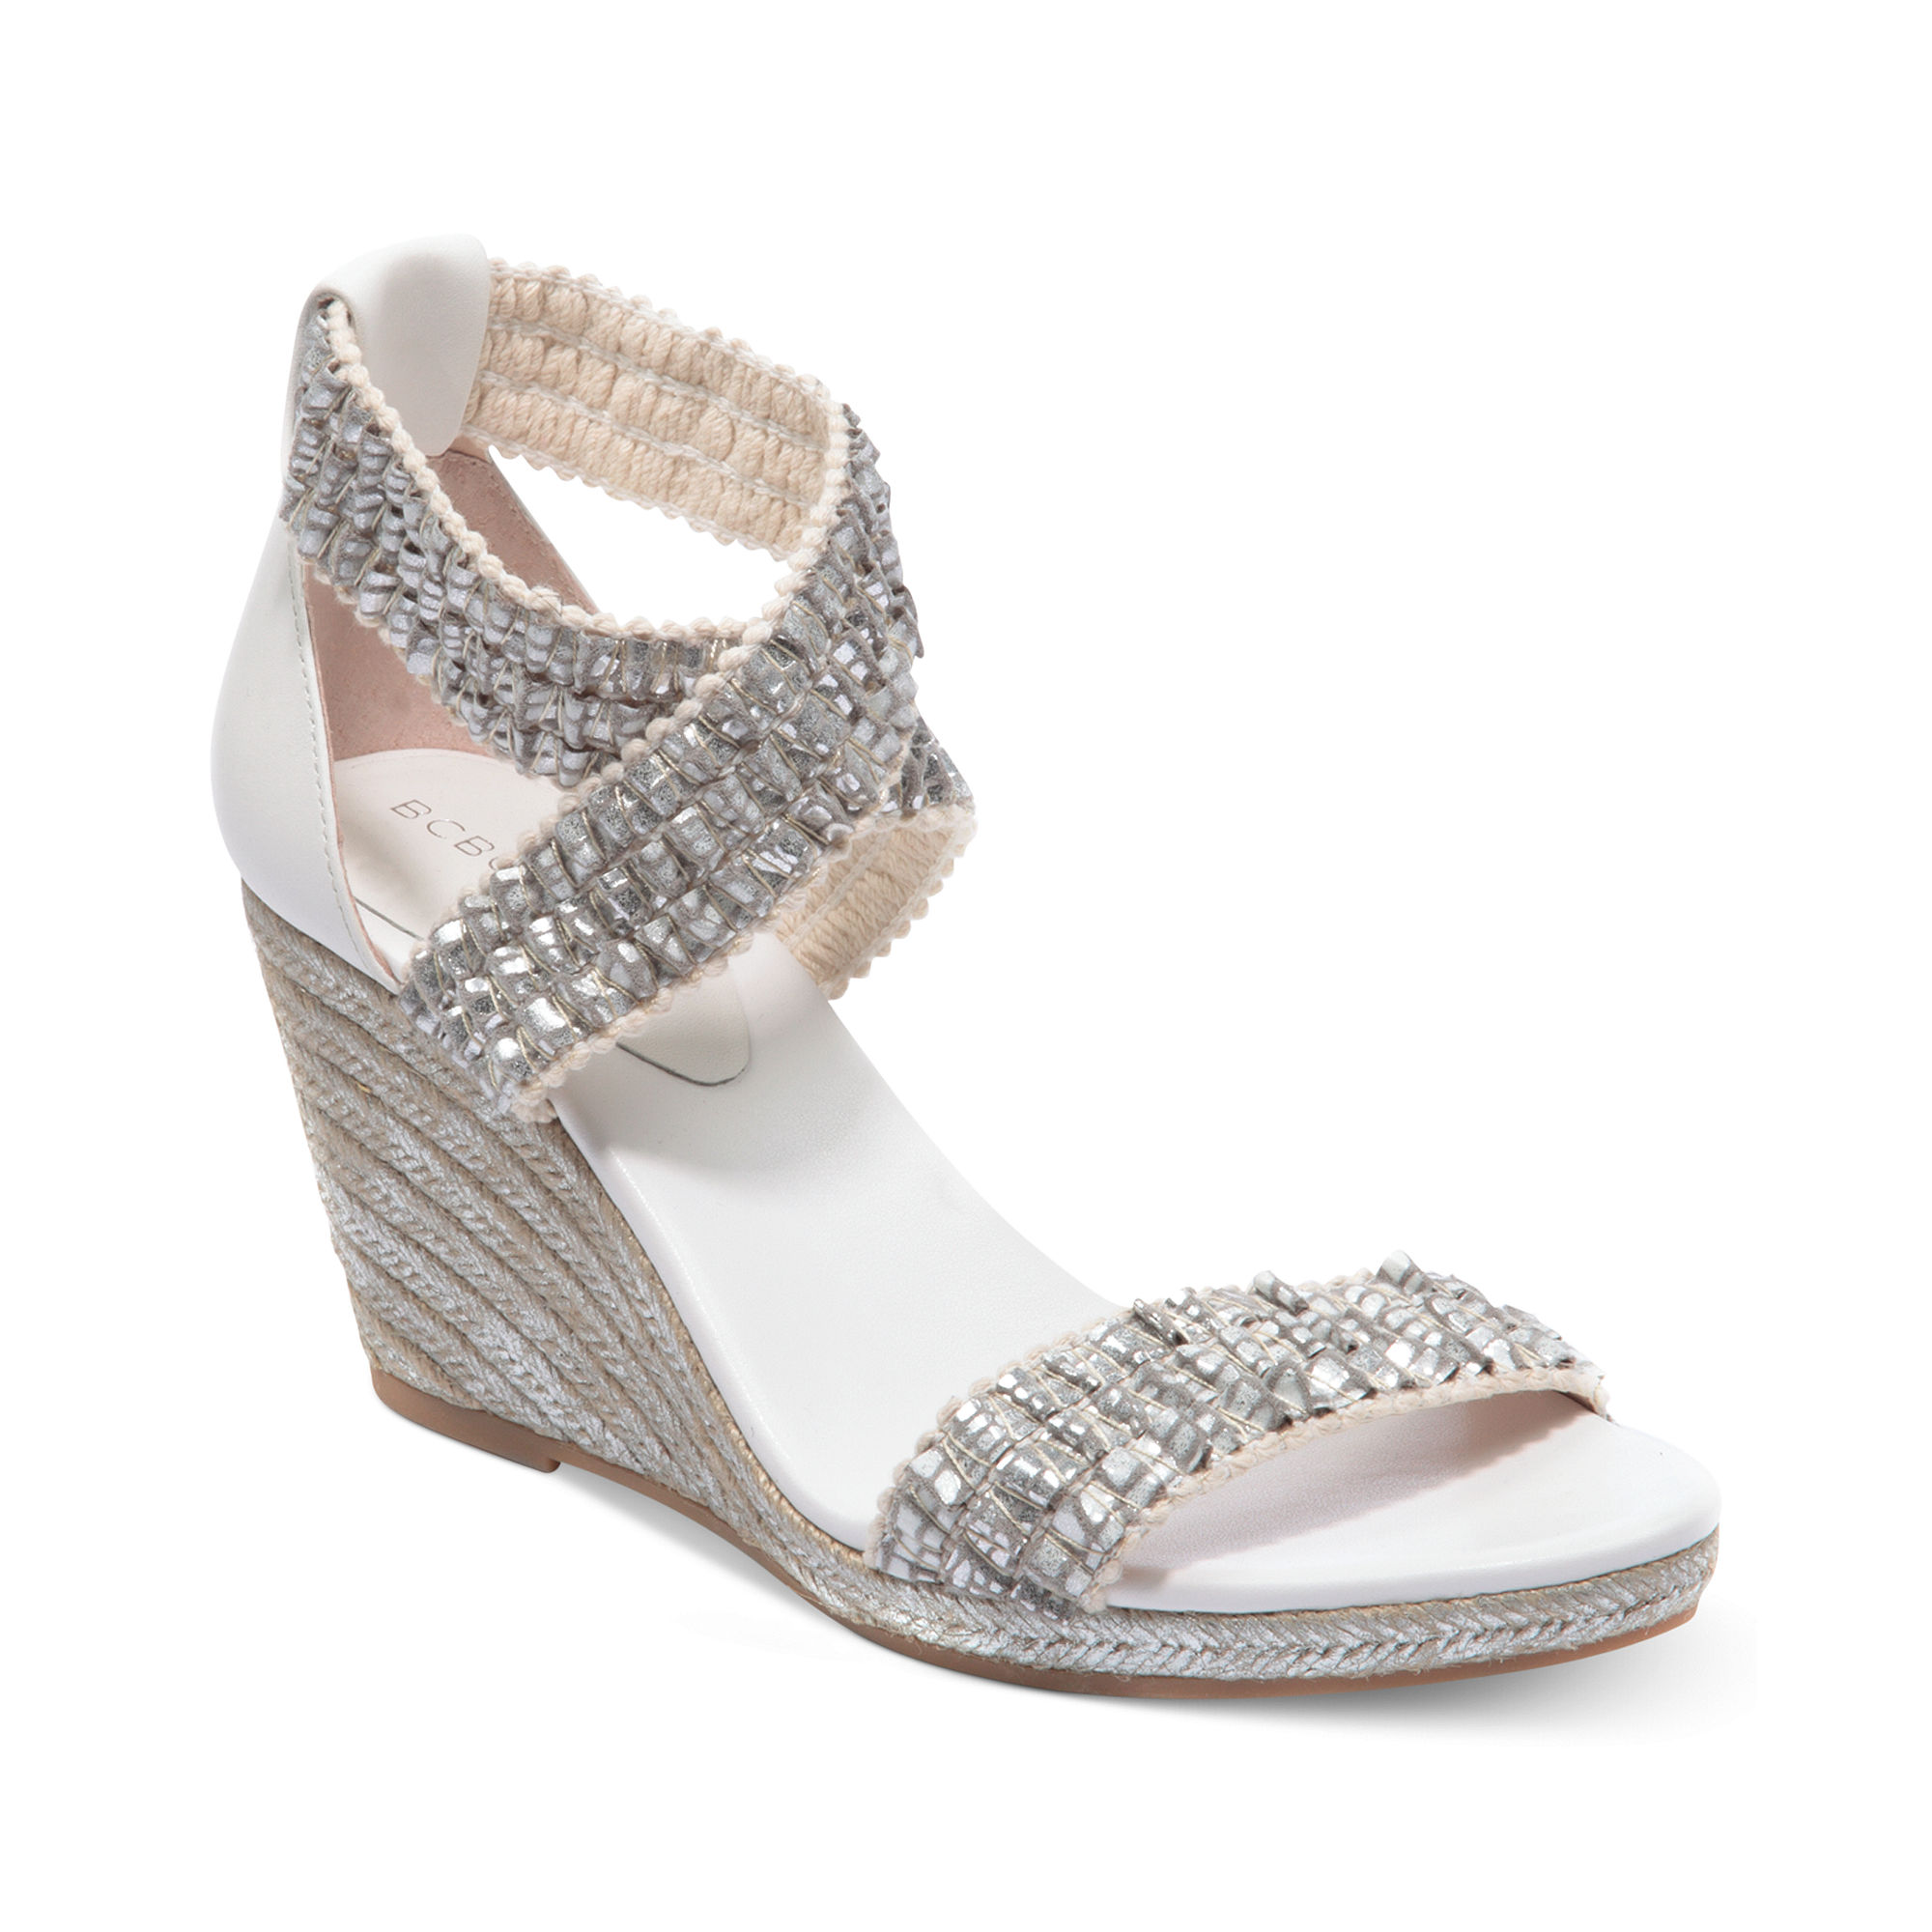 Lyst - Bcbgeneration Barca Platform Wedge Sandals in Metallic